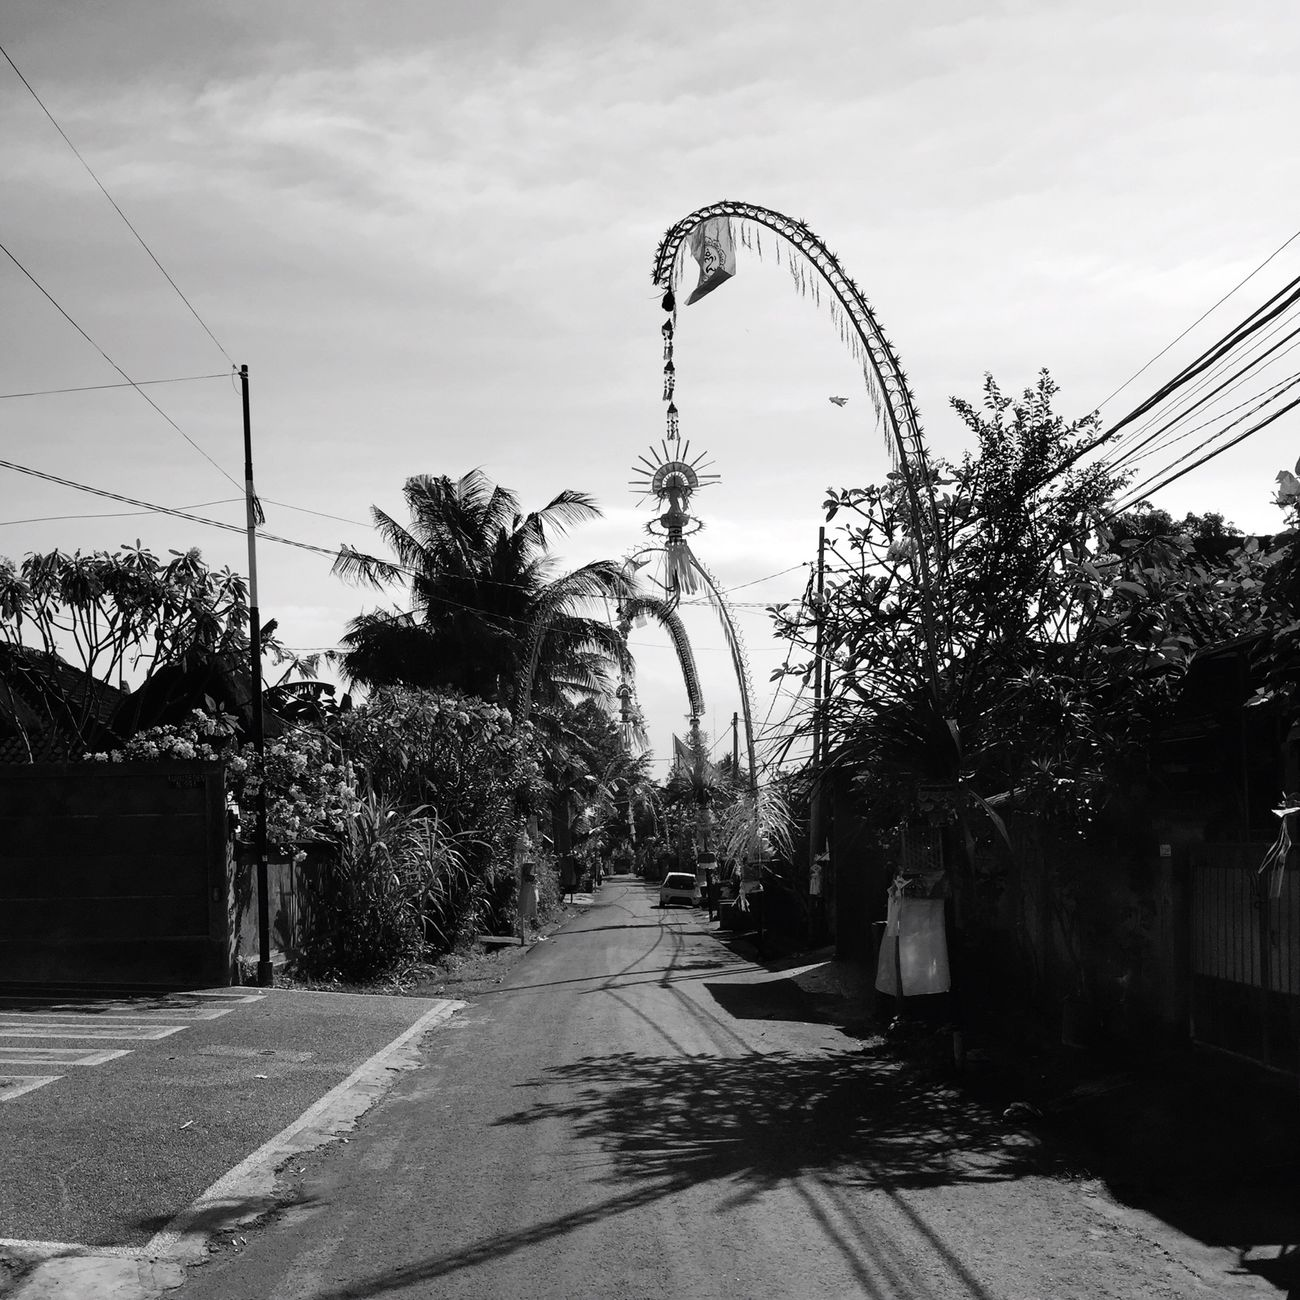 This called Penjor Blackandwhite